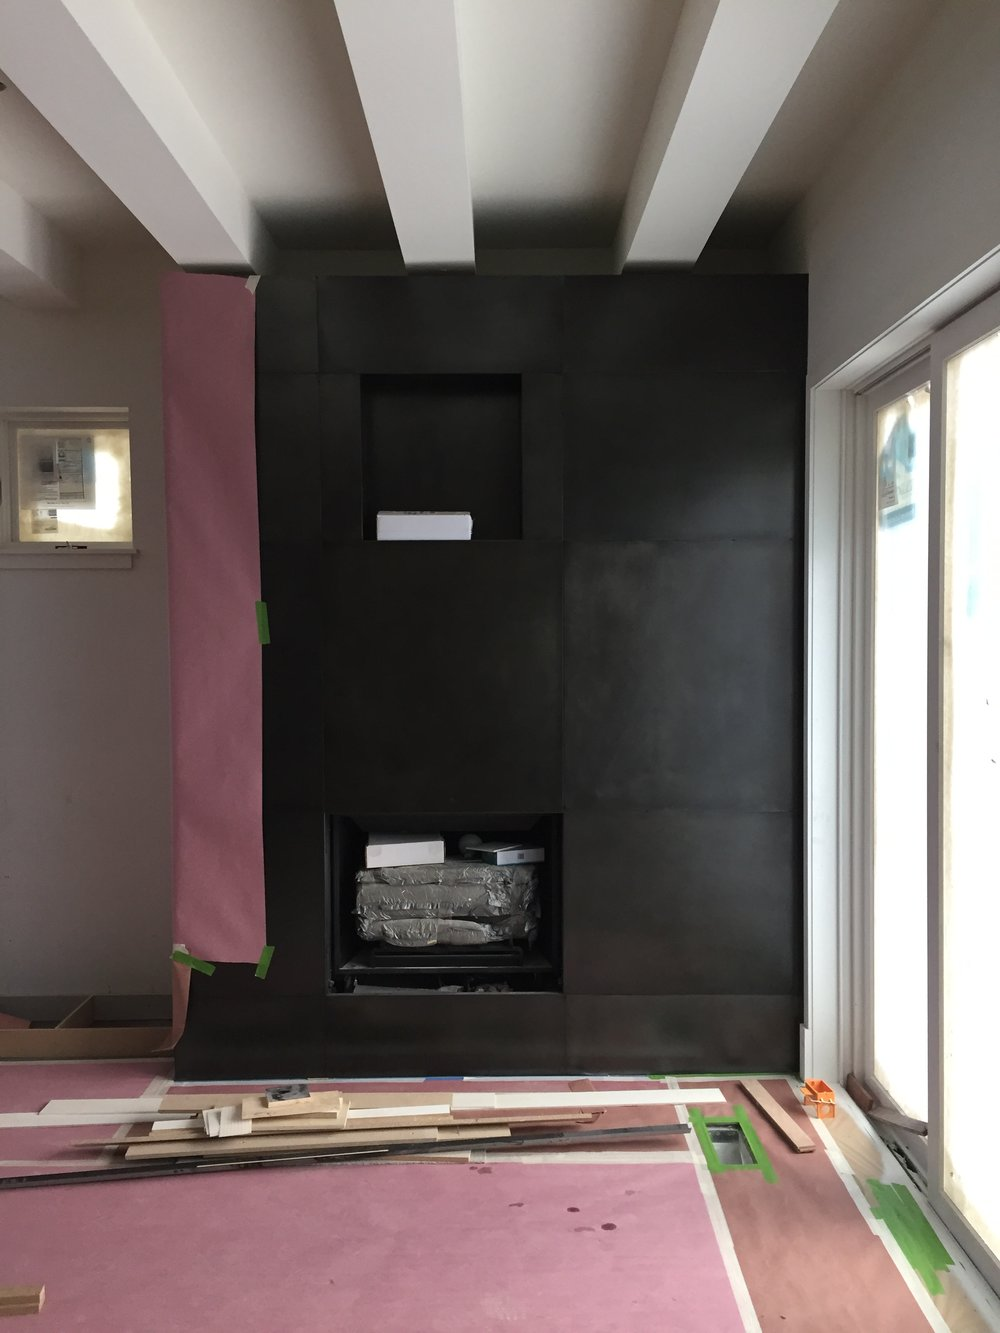 HERMITAGE  FIREPLACE FRAMED  Fireplace finishing touches with blackened steel panels; both enticing and durable.